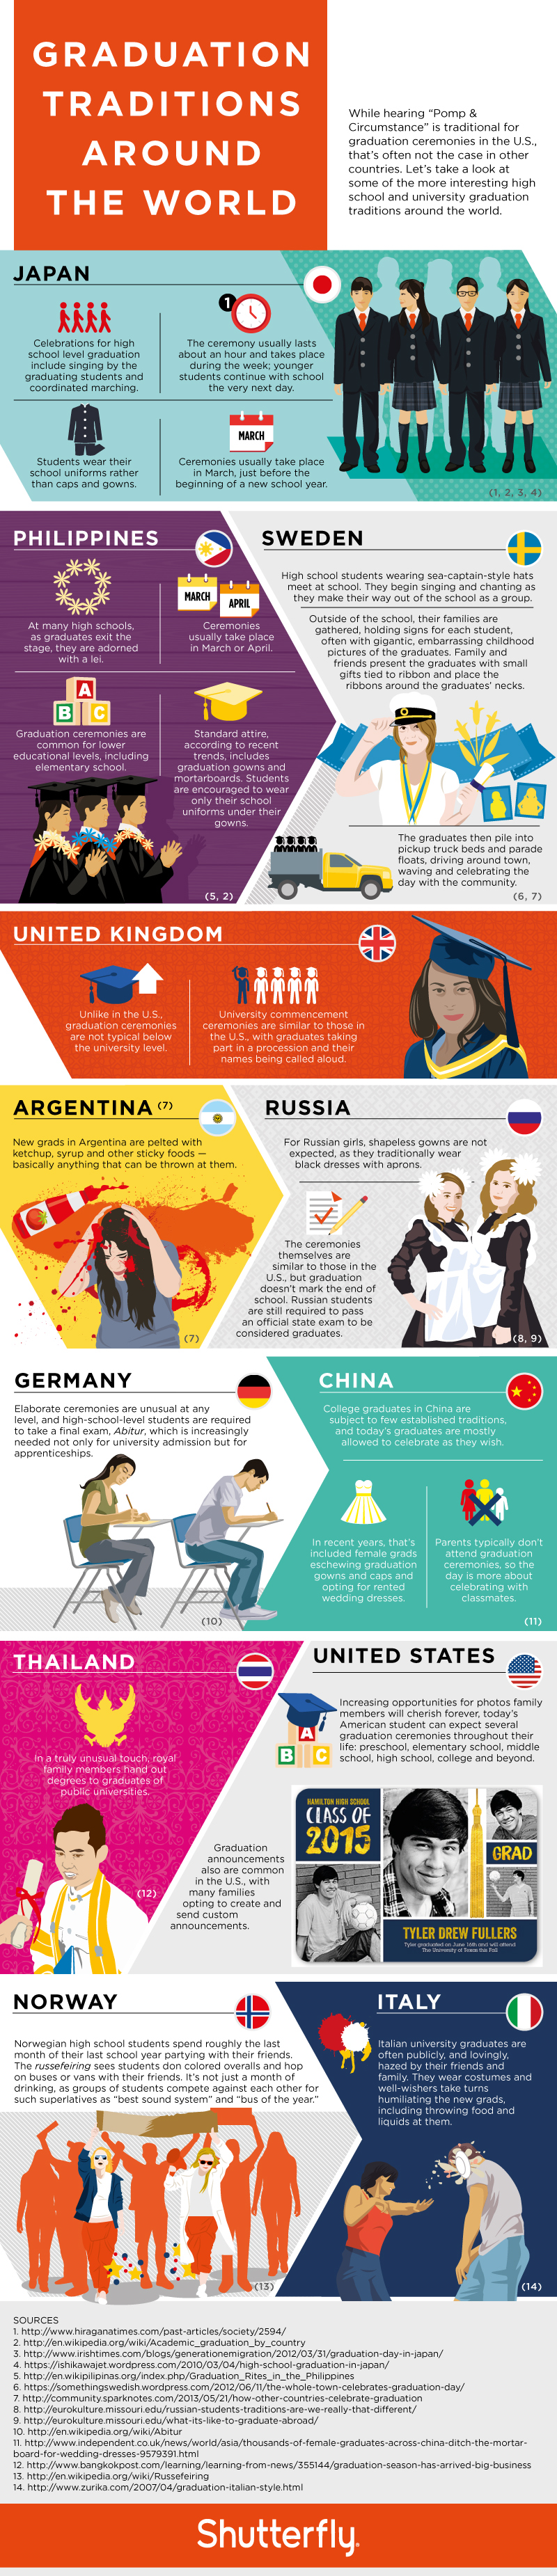 infographic worldwide graduation traditions